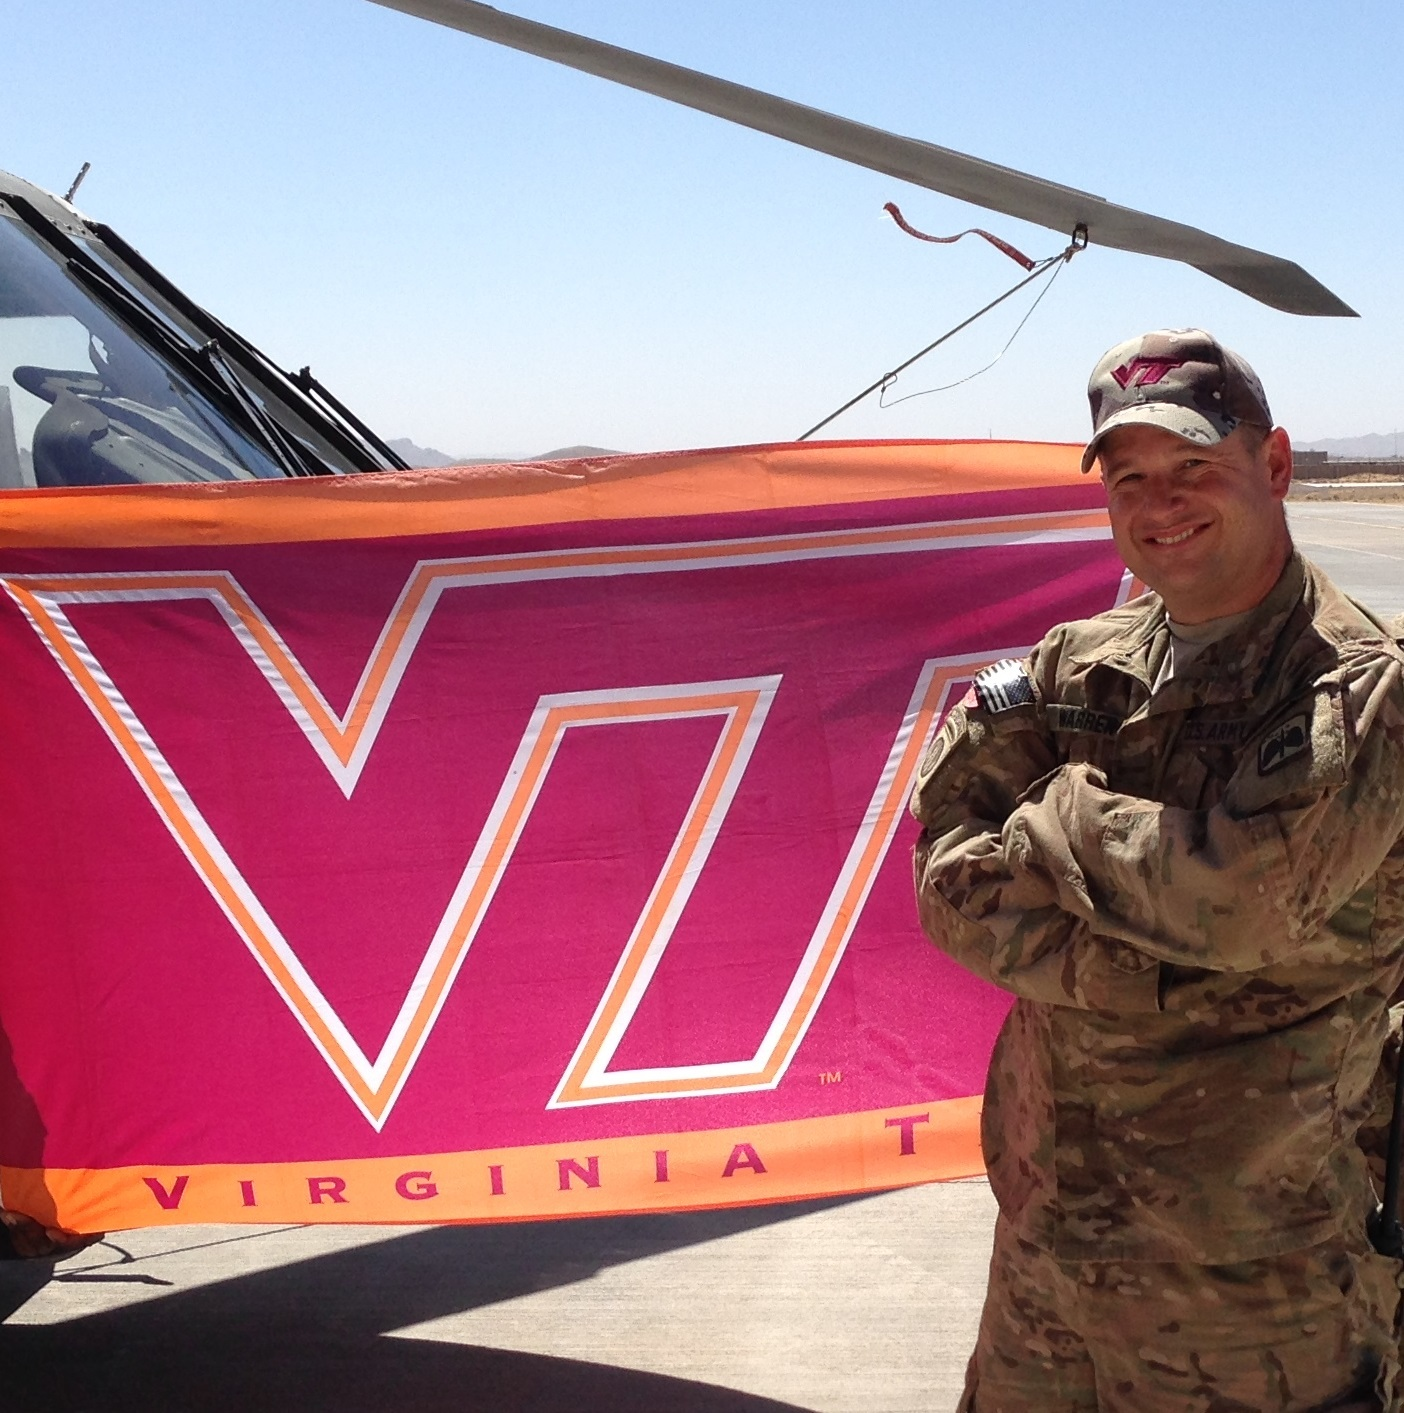 Master Sgt. Joseph Warren II, U.S. Army, Virginia Tech Corps of Cadets Class of 1996 in Afghanistan.